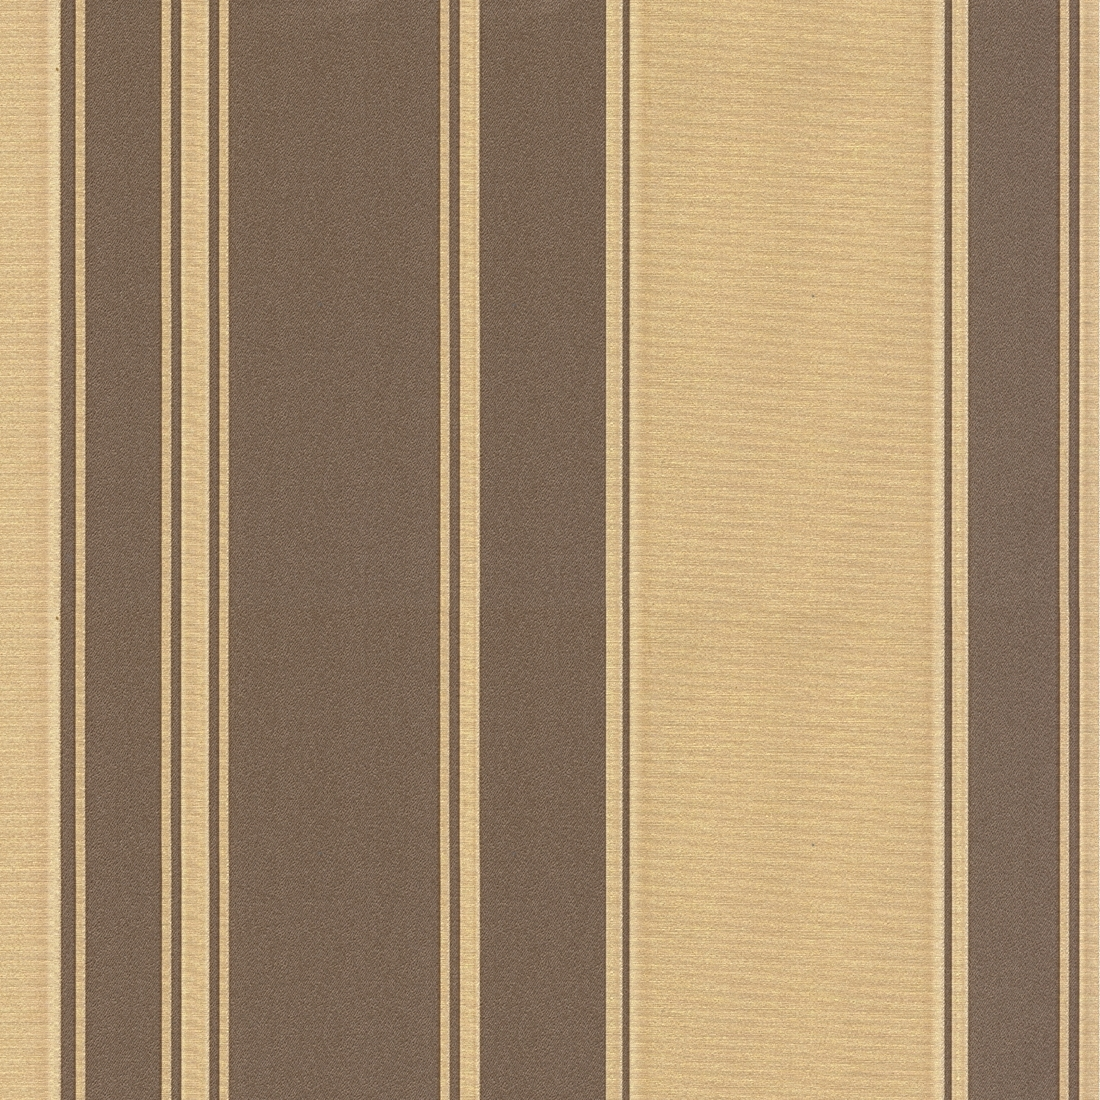 Regency Stripe Brown Gold Wallpaper from Seriano by Belgravia Decor 1100x1100